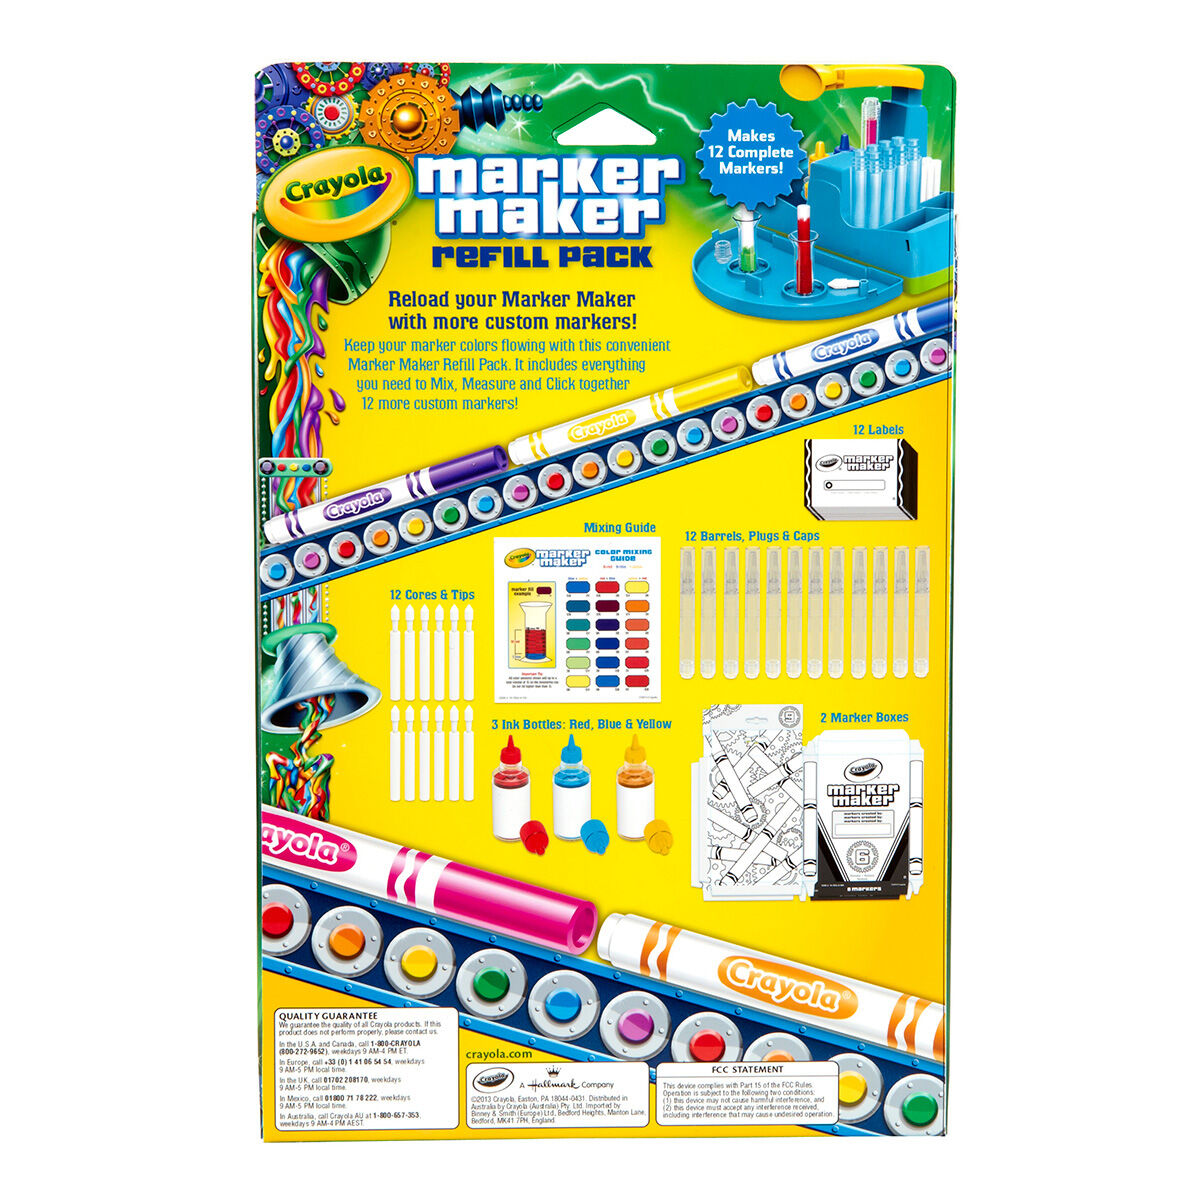 Marker maker unit and refill pack crayola marker maker unit and refill pack nvjuhfo Image collections